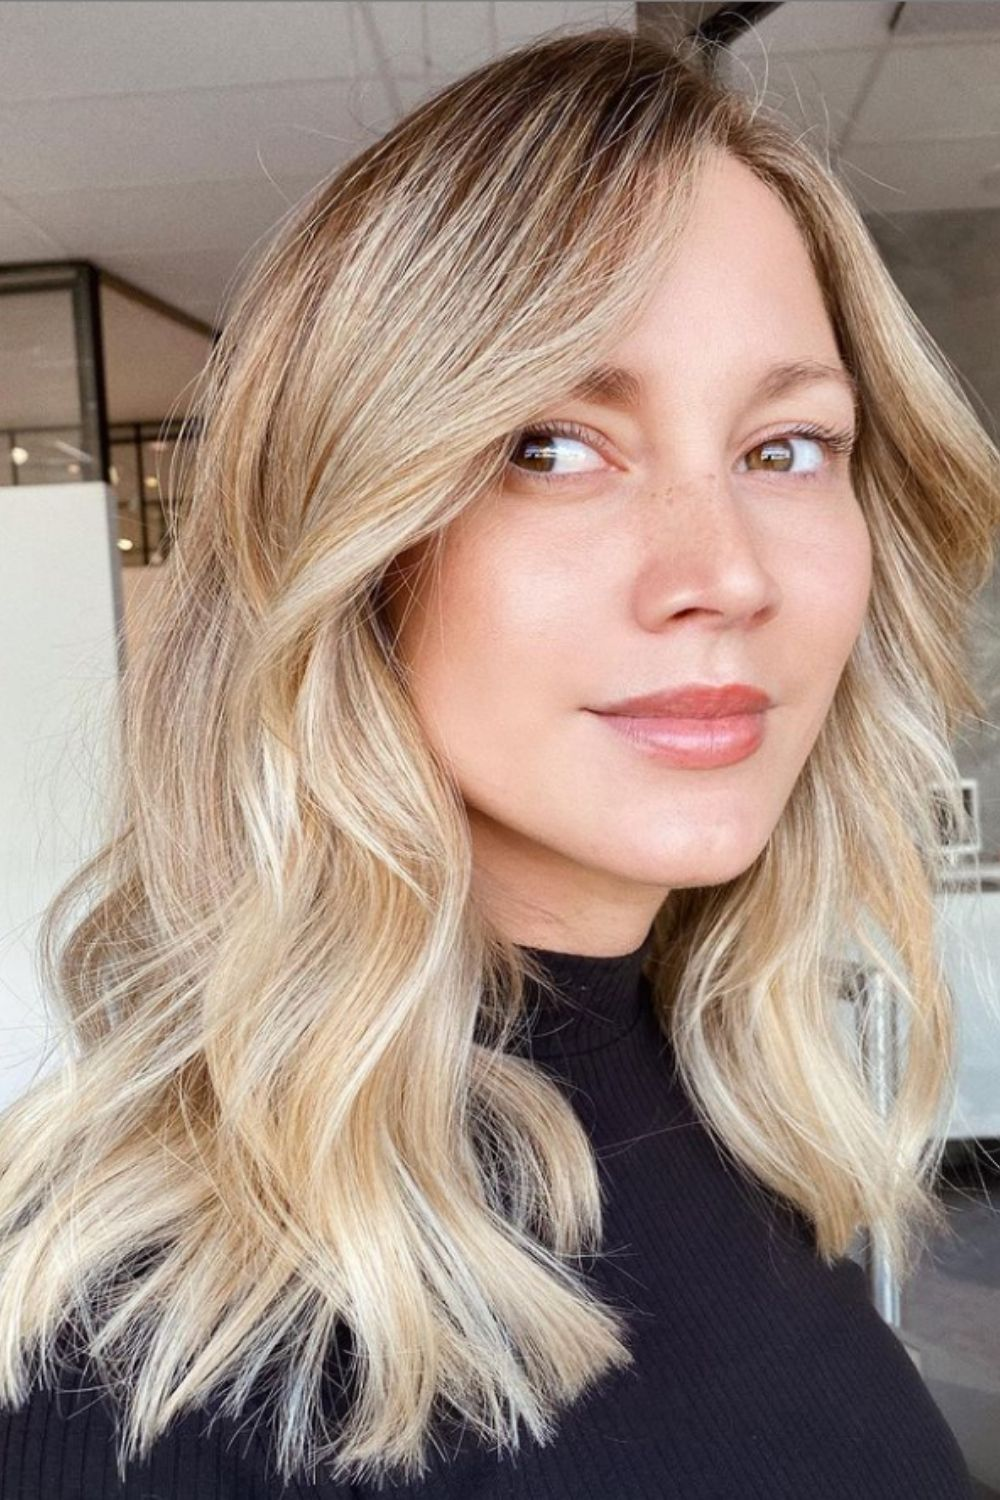 How To Get Beach Wavy Hairstyles 2021 For Women?